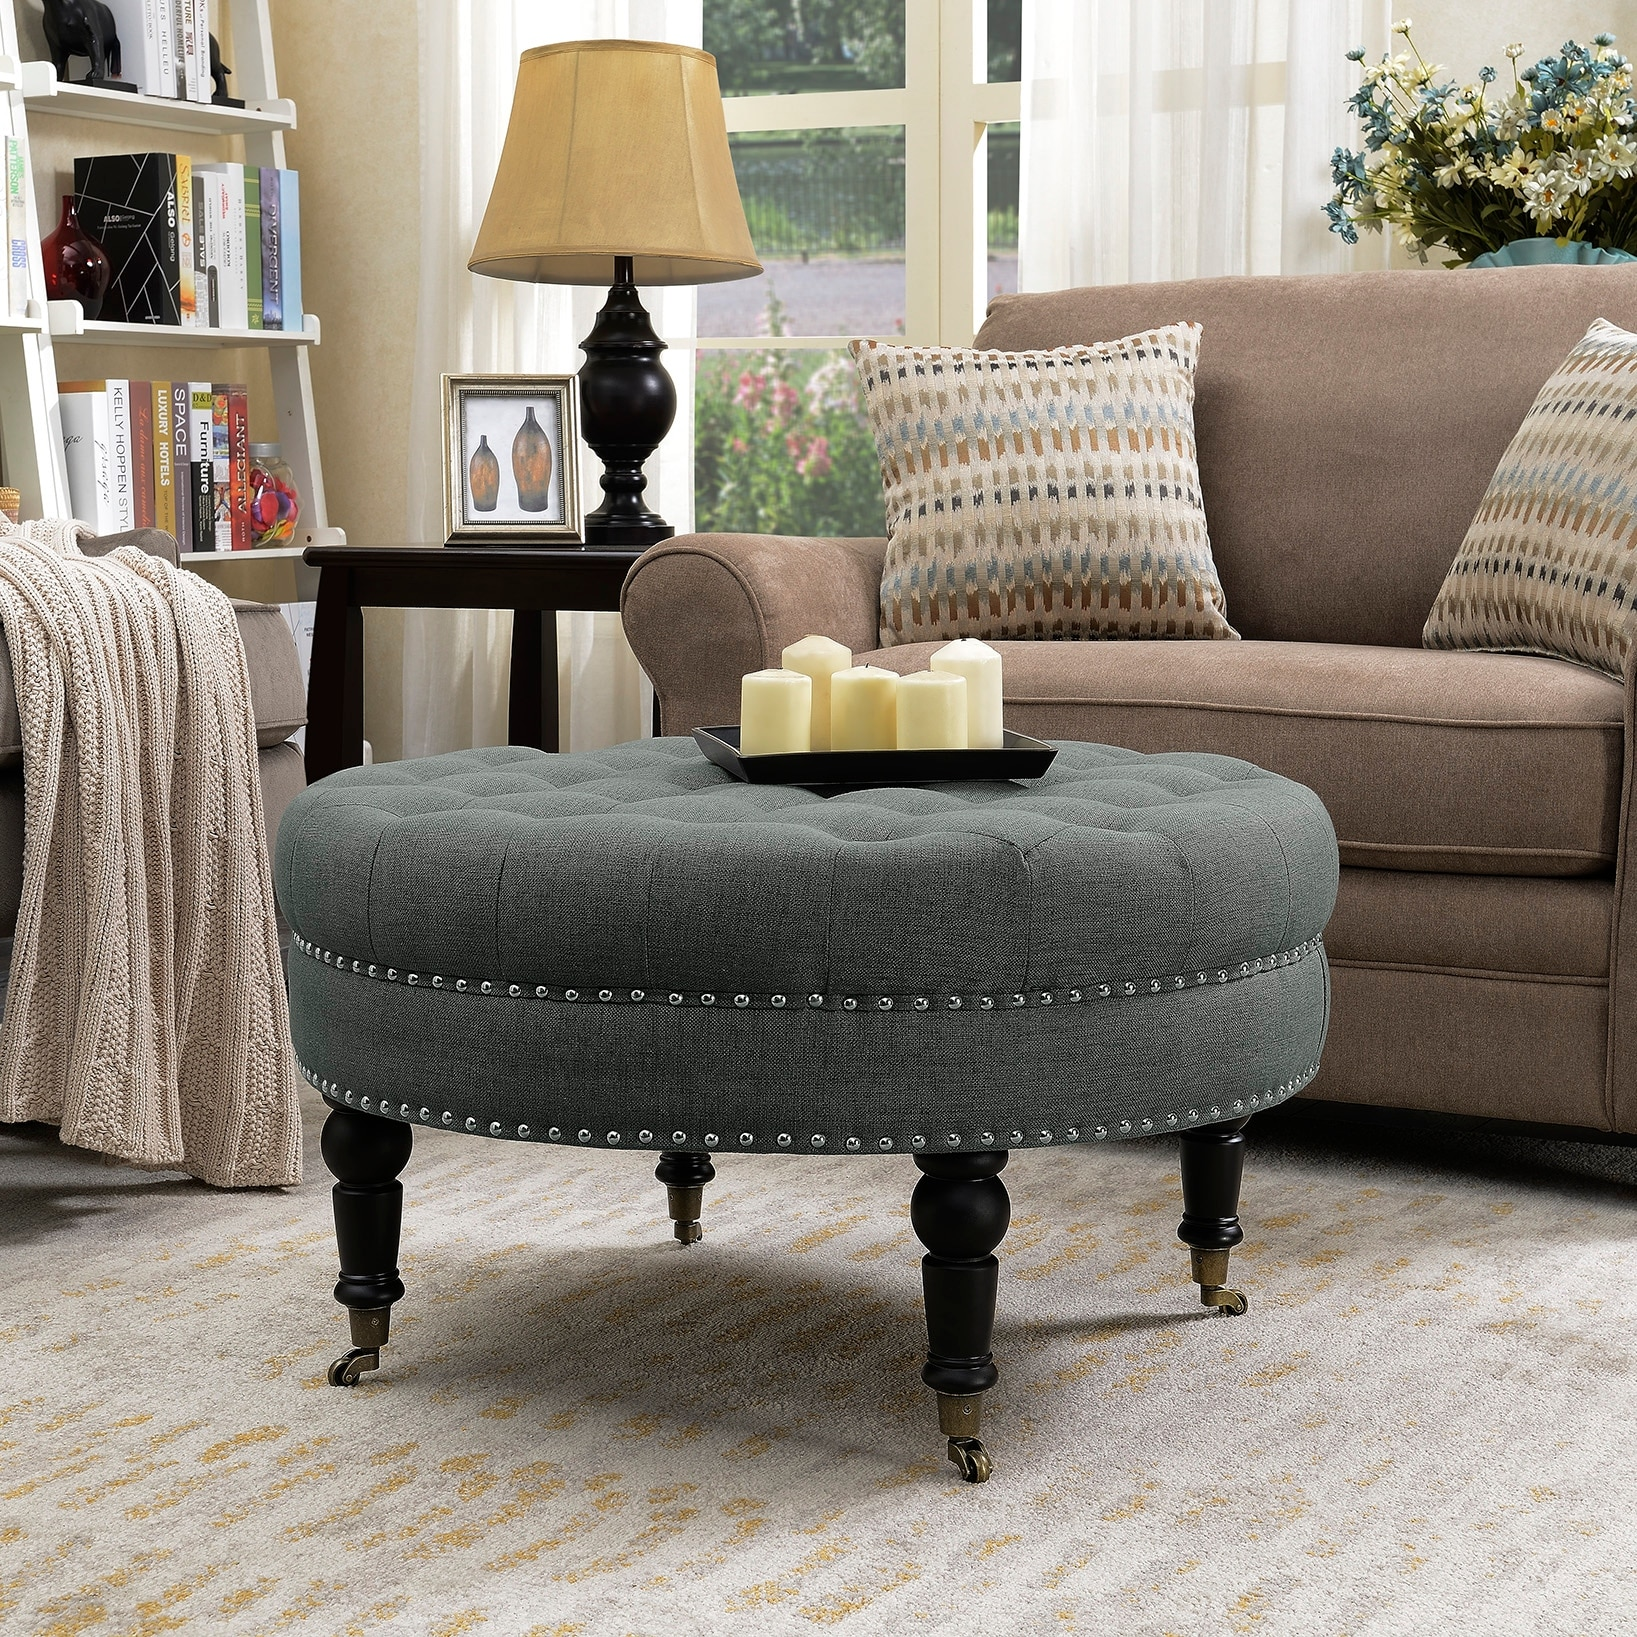 Belleze 33 Inch Round Tufted Linen Ottoman Large Footstool Tail With Caster Gray Beige